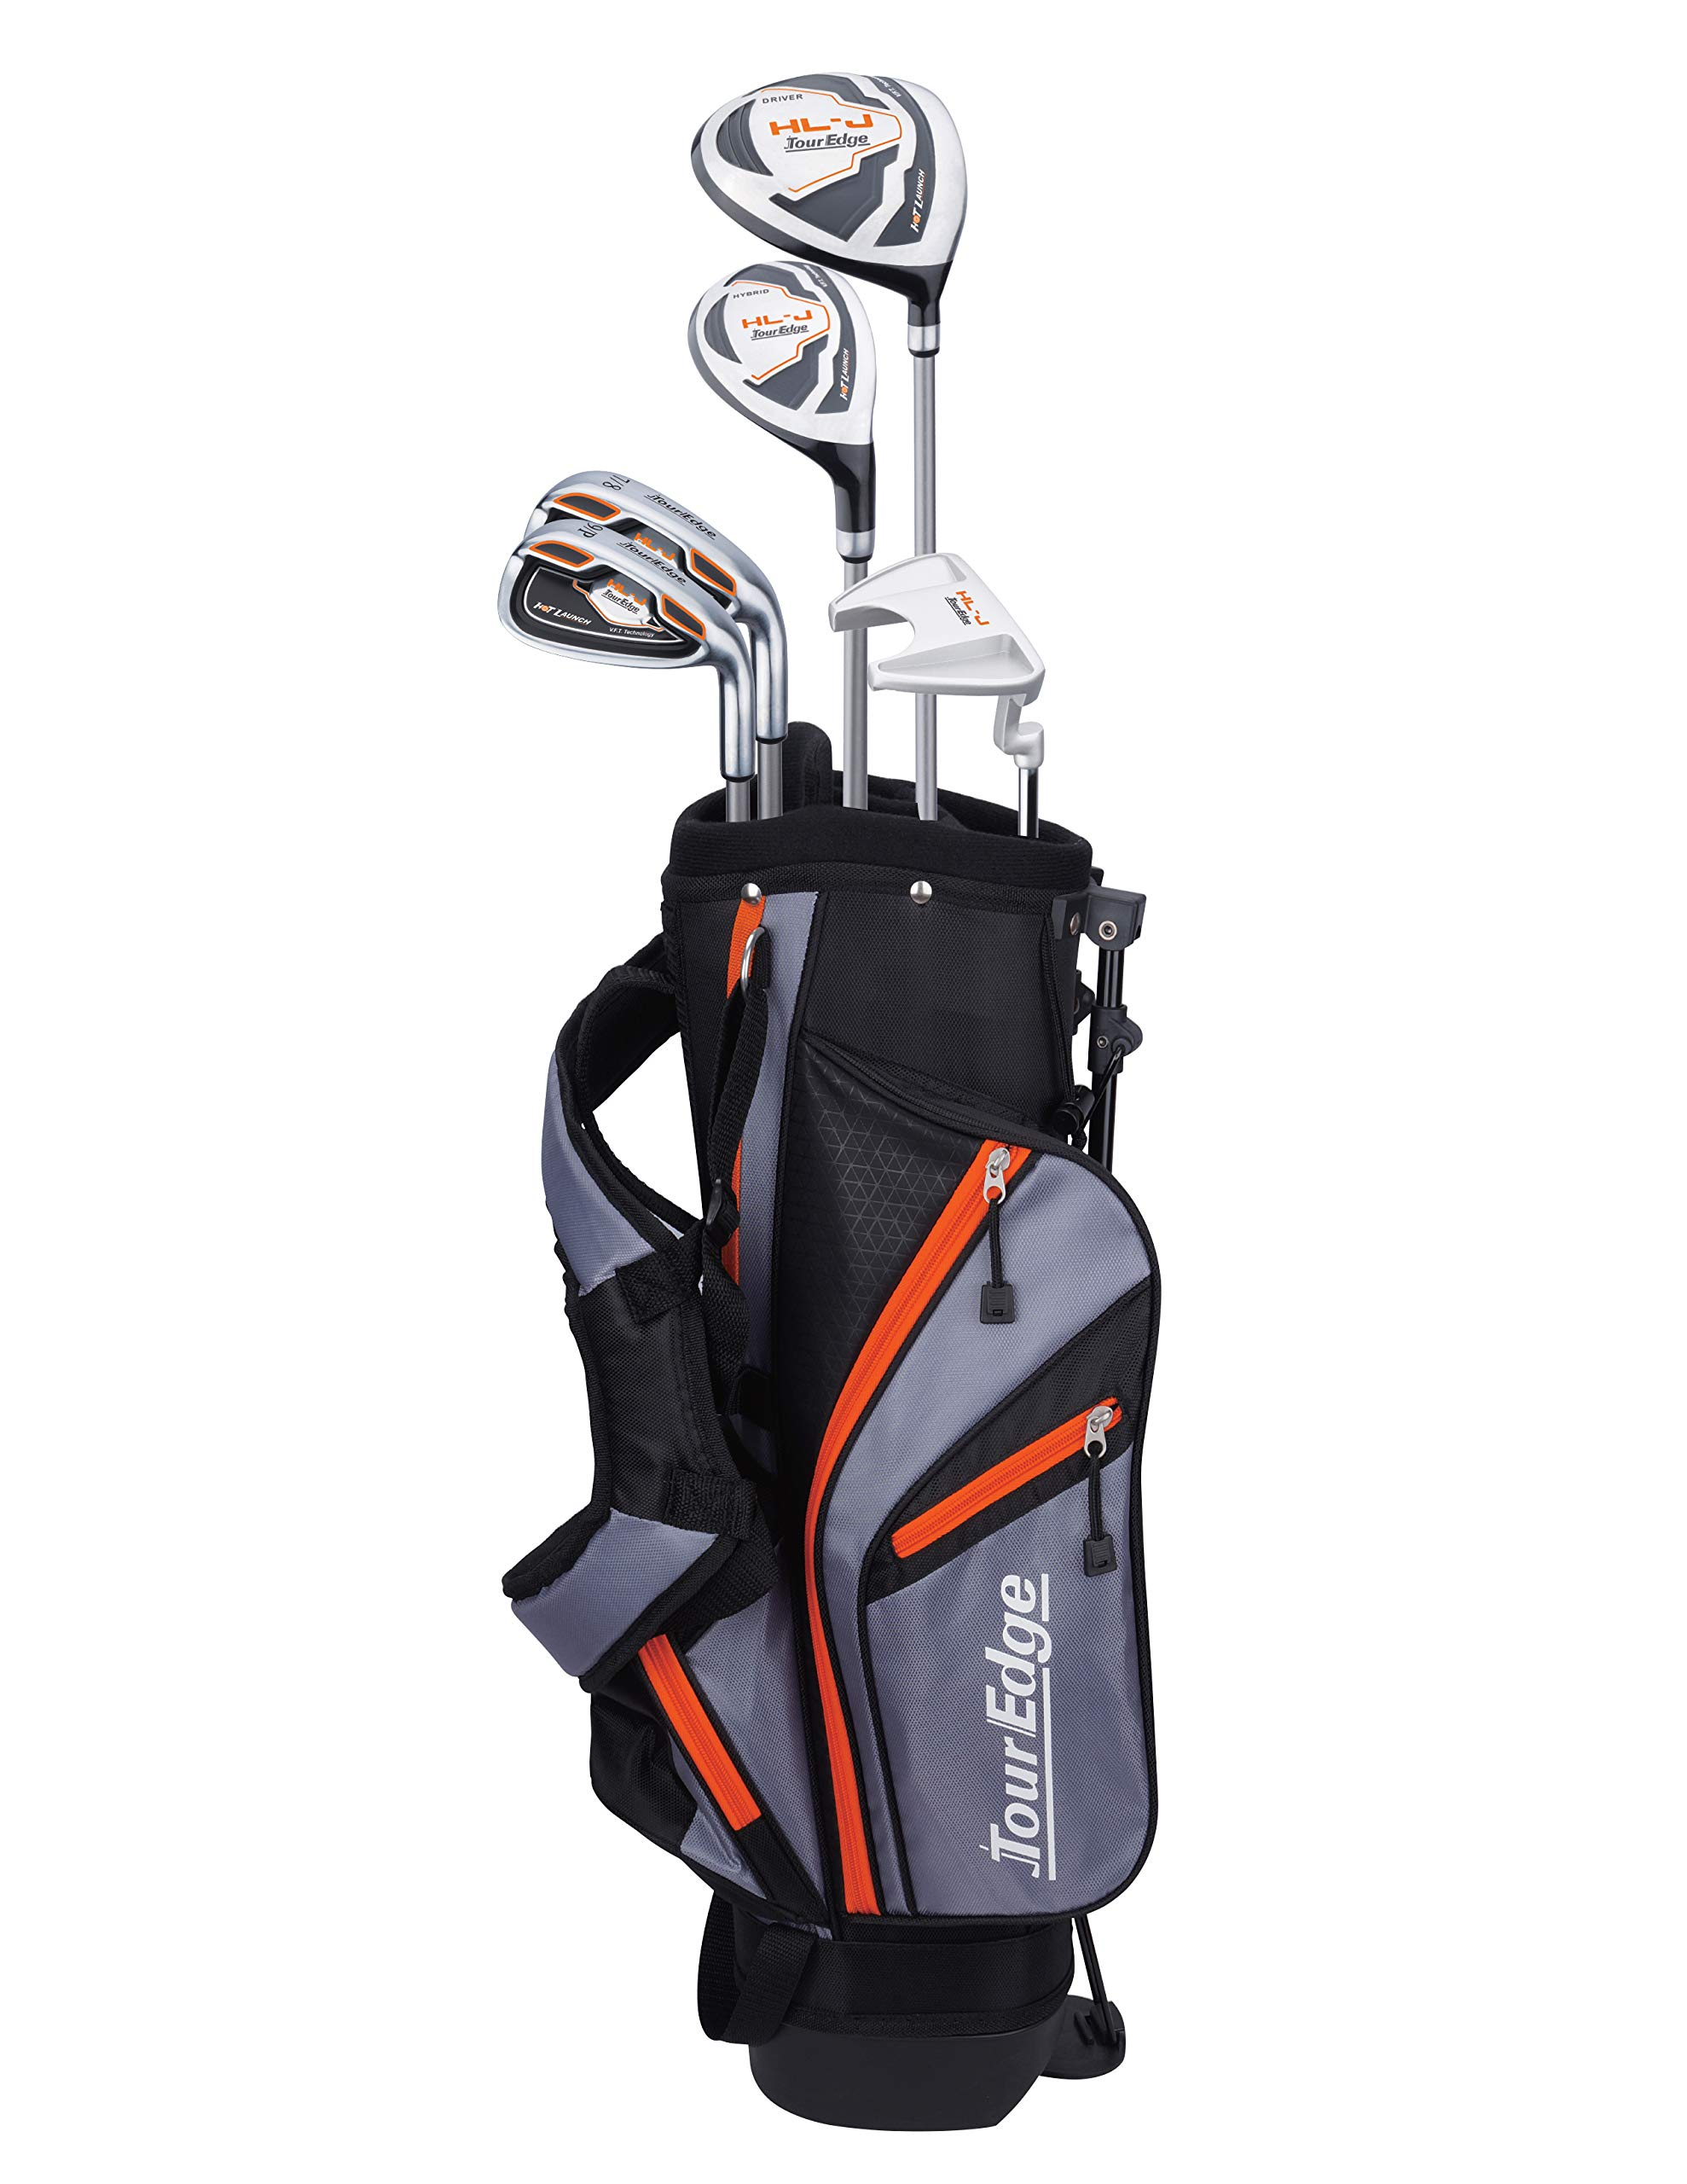 Tour Edge HL-J Junior Complete Golf Set with Bag (Right Hand, Graphite, 1 Putter, 2 Irons, 1 Hybrid, 1 Wood, 5-8 YRS) Orange by Tour Edge (Image #1)